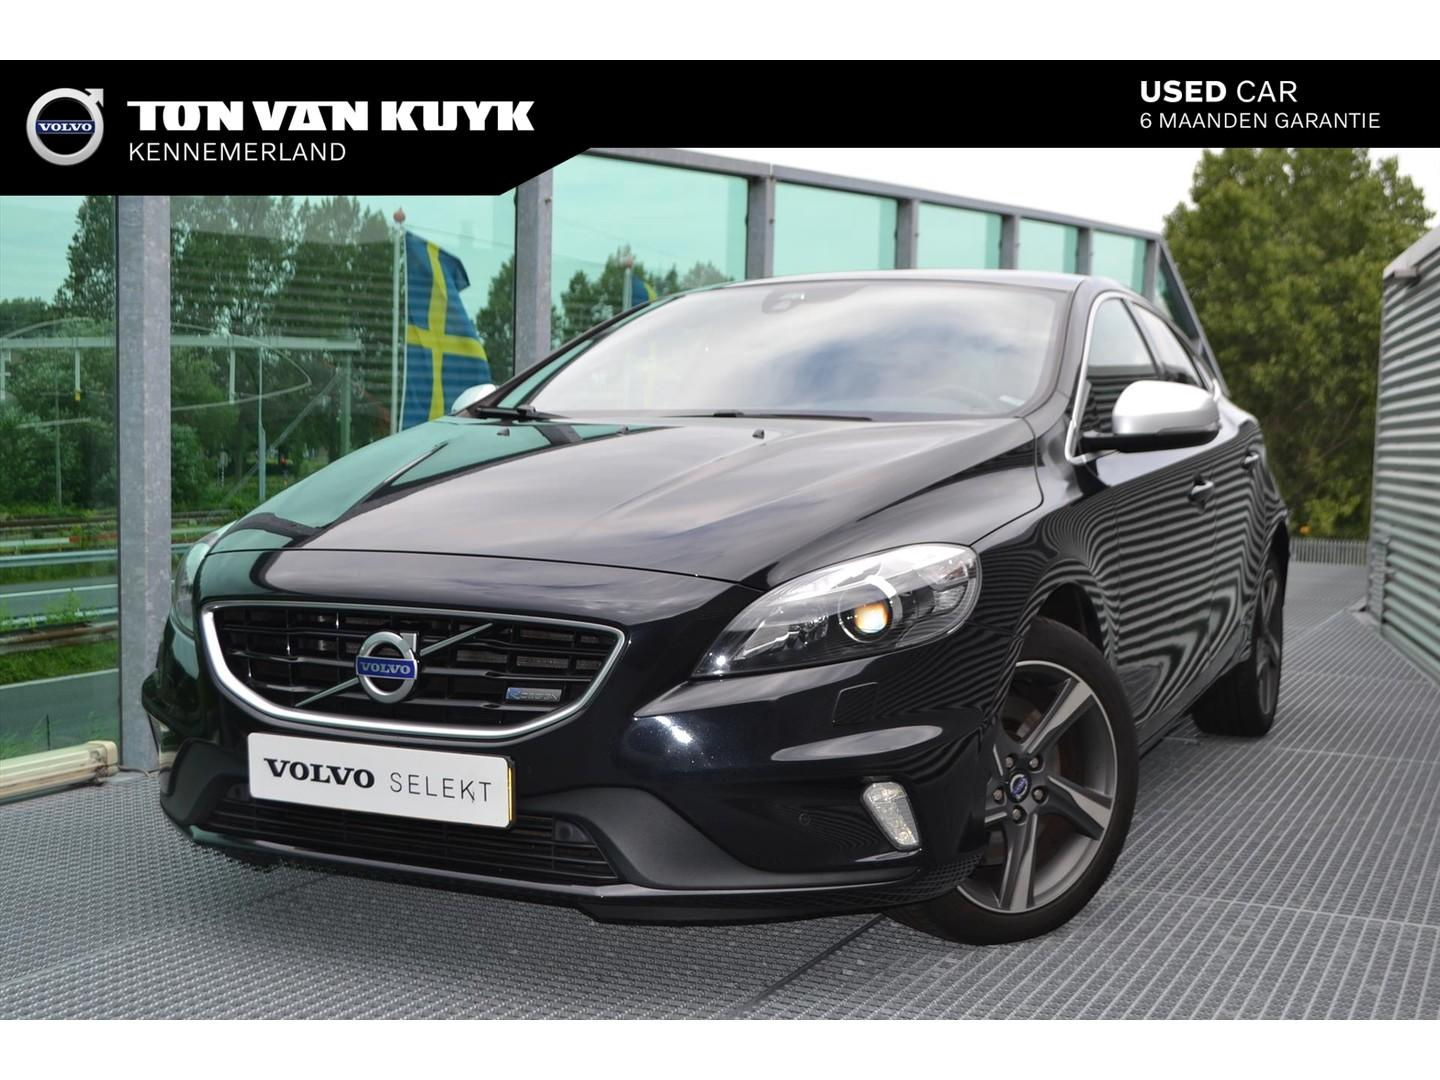 Volvo V40 2.0 d4 190pk geartronic r-design / plus / luxury / security / full options